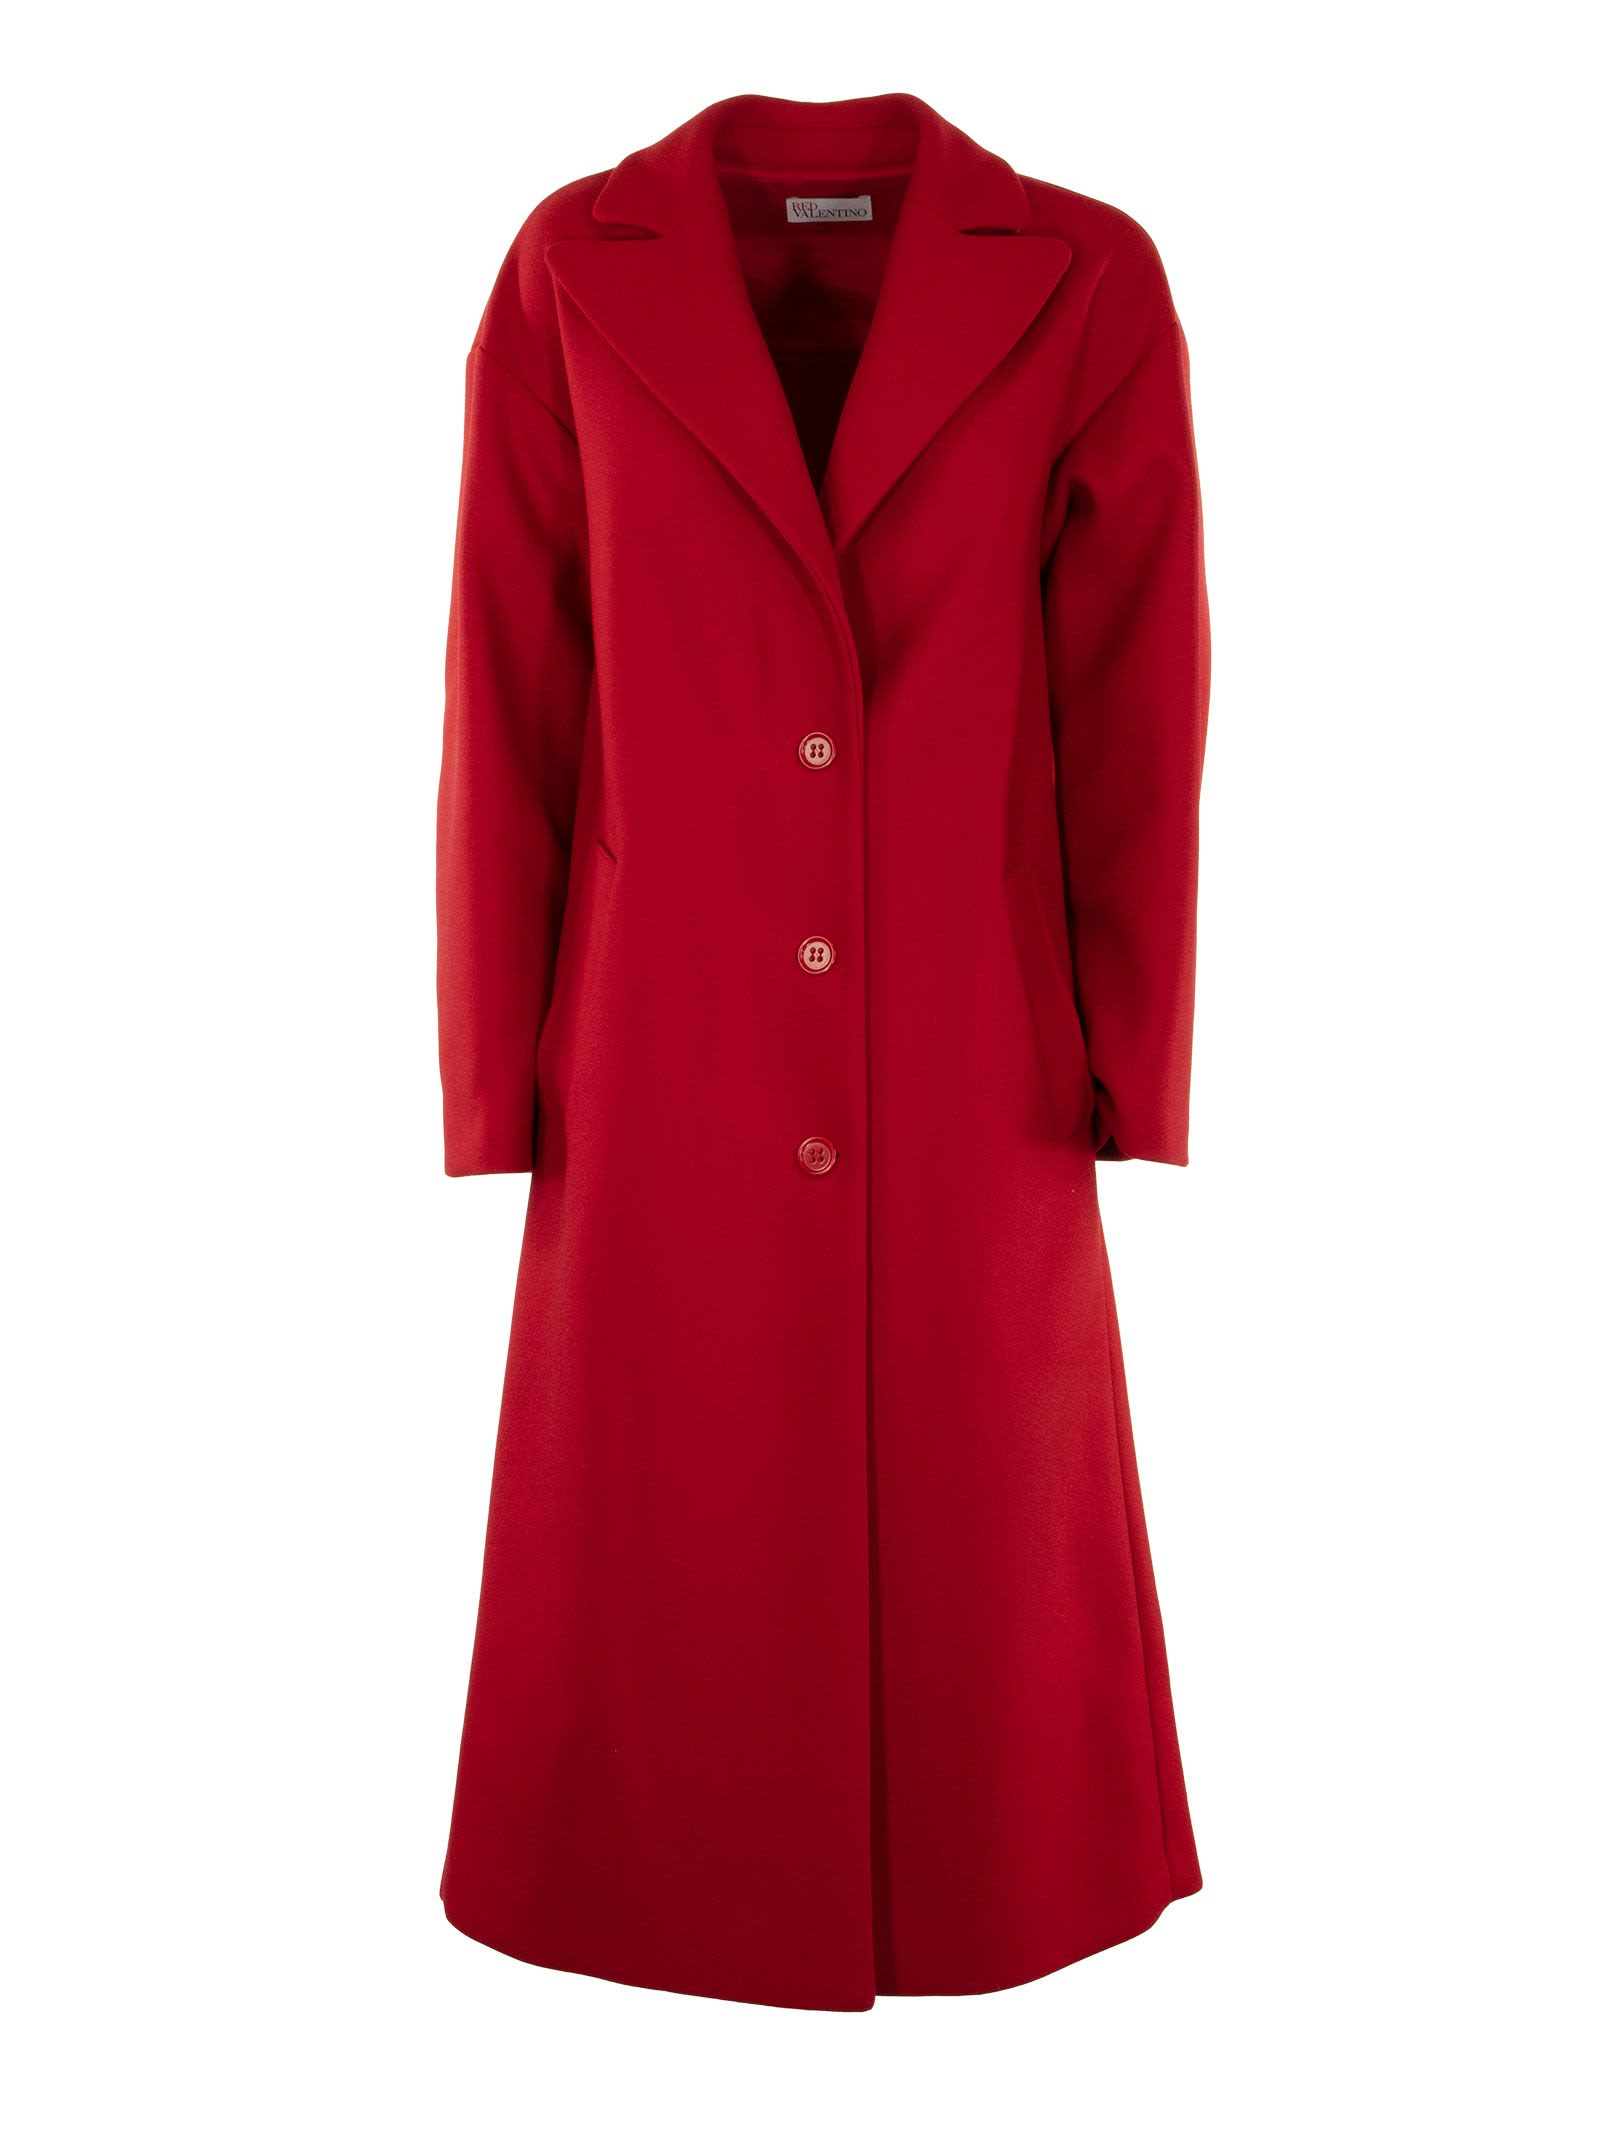 Photo of  RED Valentino Cappotto Rosso- shop RED Valentino jackets online sales